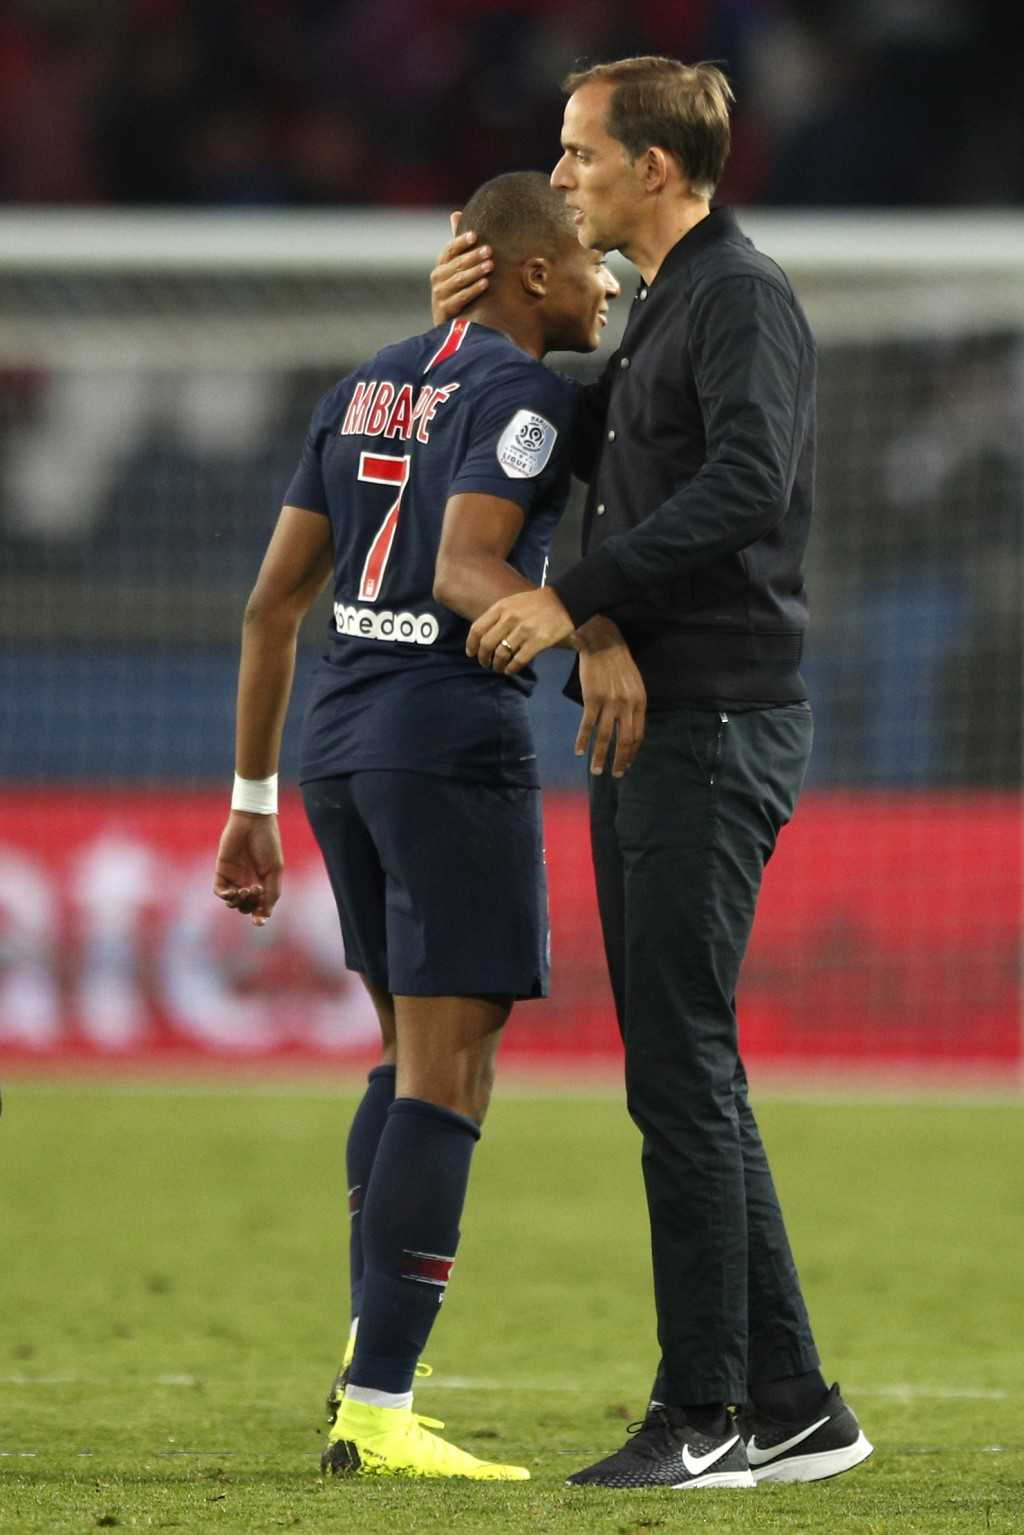 PSG coach Thomas Tuchel, right, embraces PSG's Kylian Mbappe after the French League One soccer match between Paris-Saint-Germain and Amiens at the Pa...